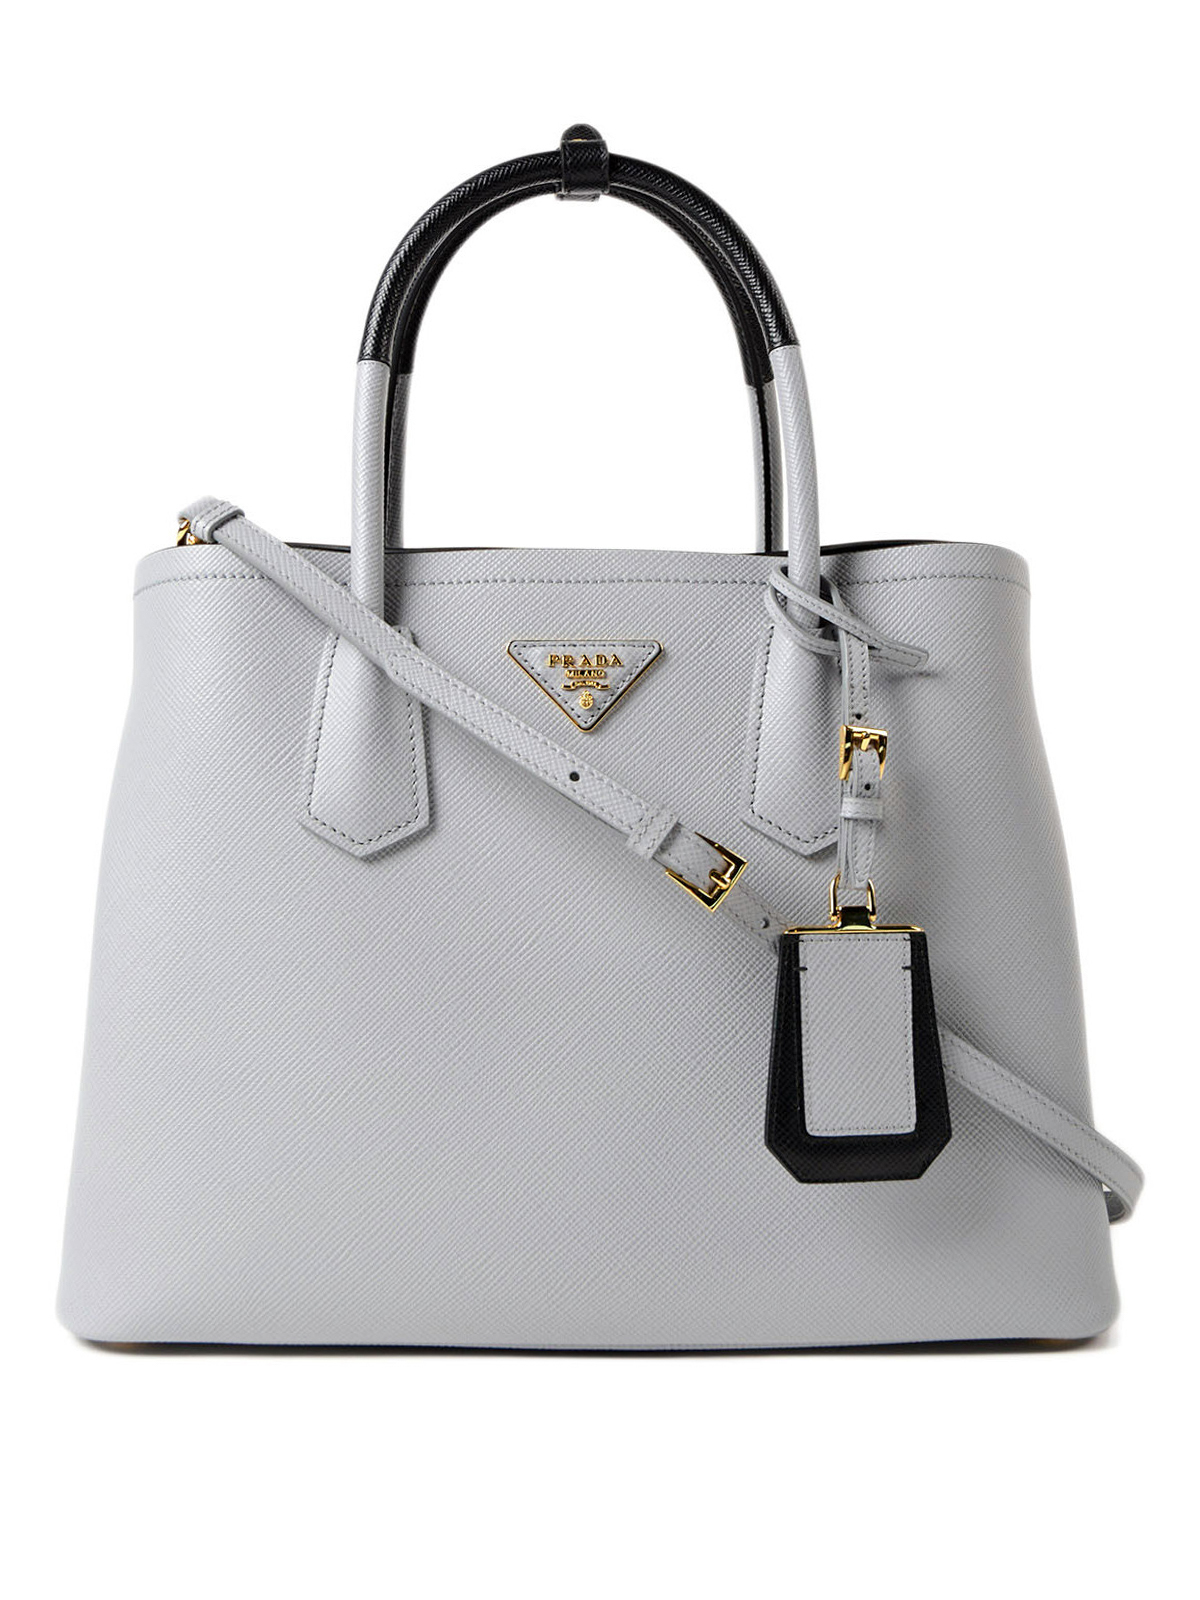 Prada - Double saffiano leather tote - totes bags - 1BG7752A4AF0772VOOM 5c06cd7c79